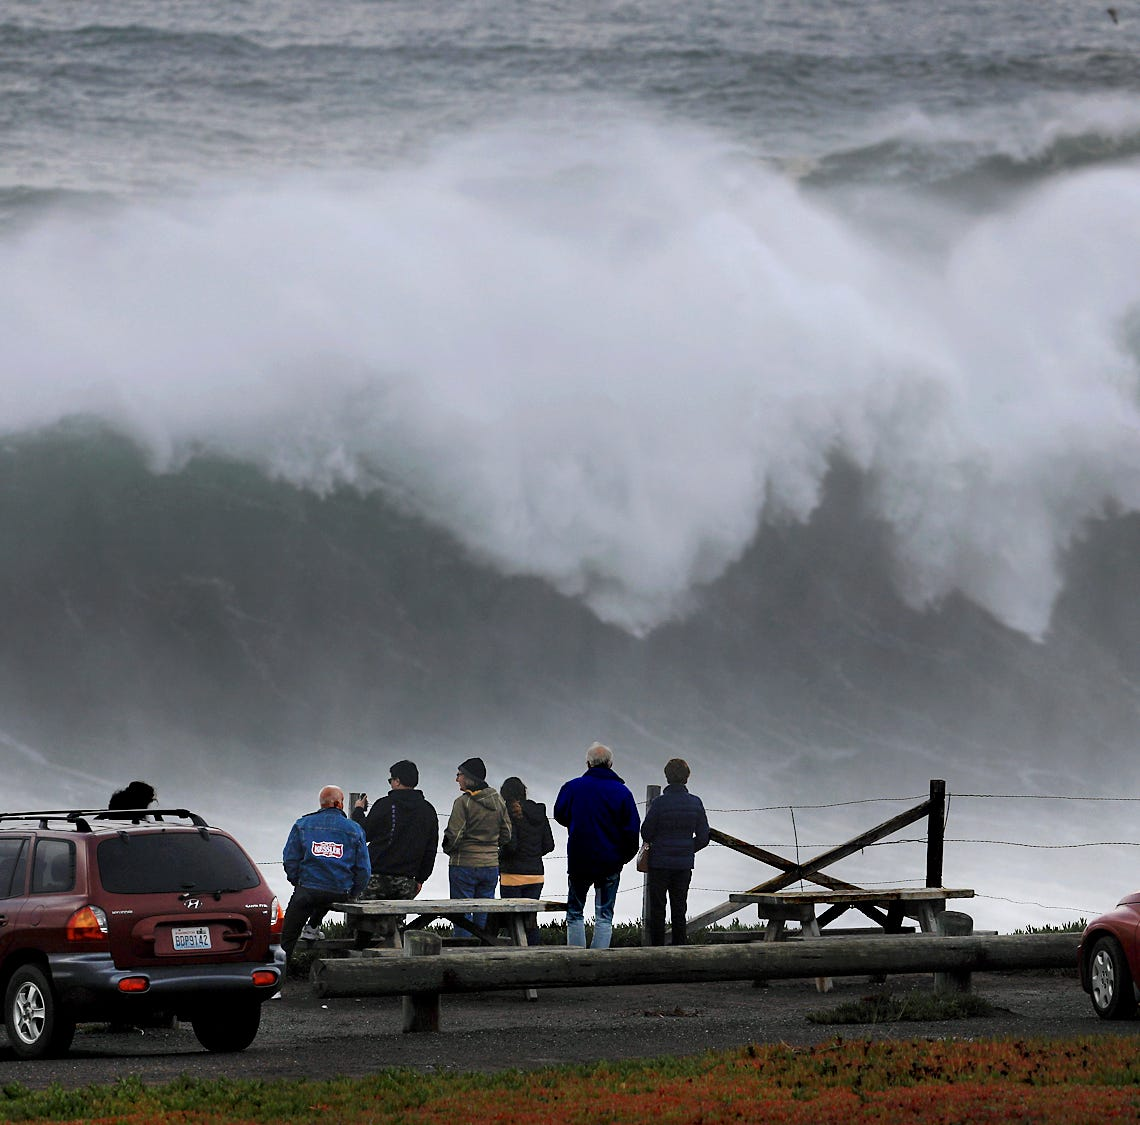 California surfers brave death in big waves and social media shows off the madness